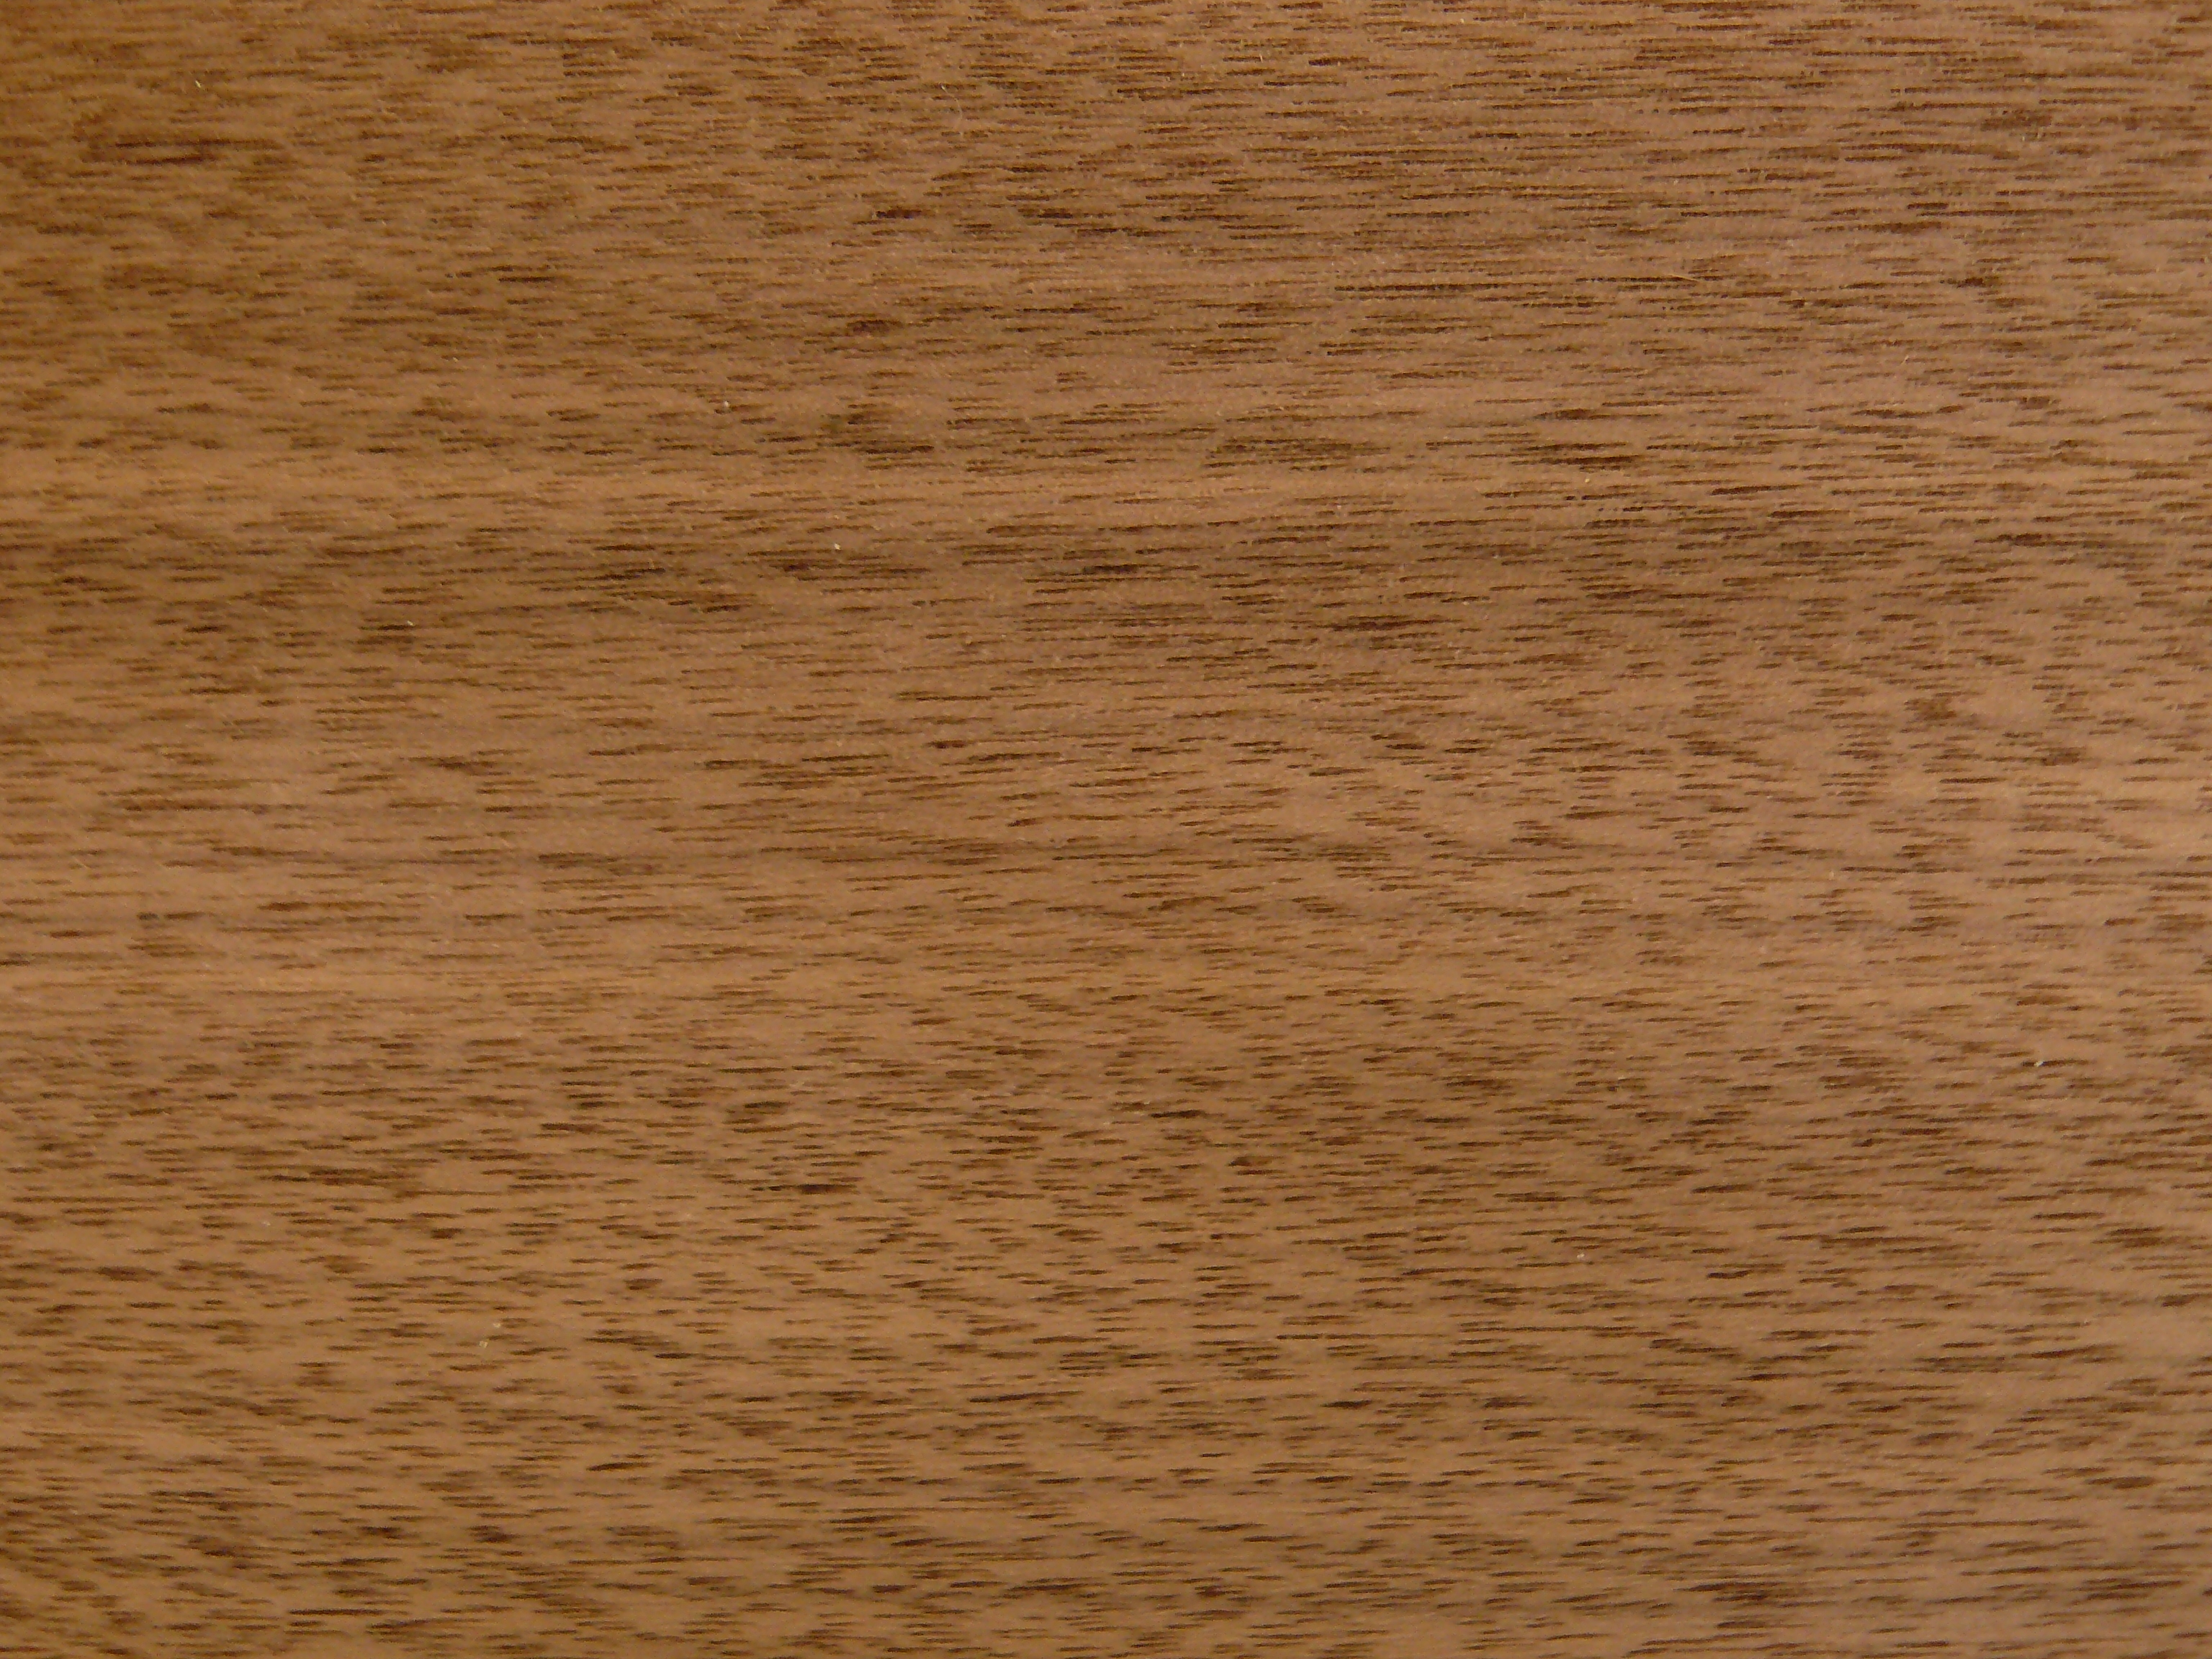 FileTexture de noyerjpg  Wikimedia Commons